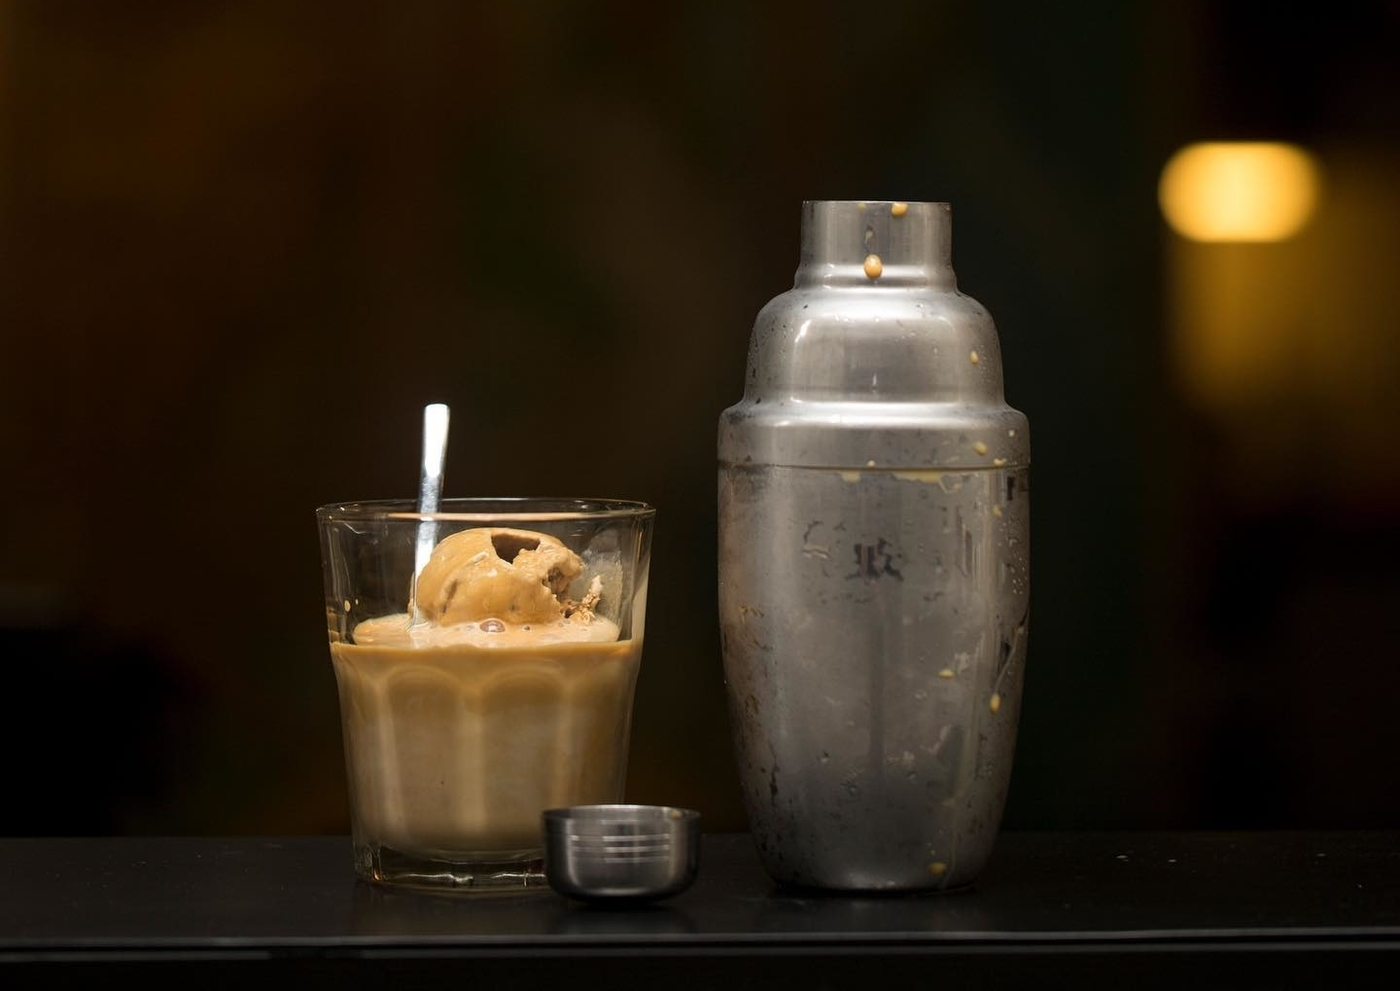 coffee with ice cream and cocktail shaker at Kaffe new cafe Hong Kong 2019